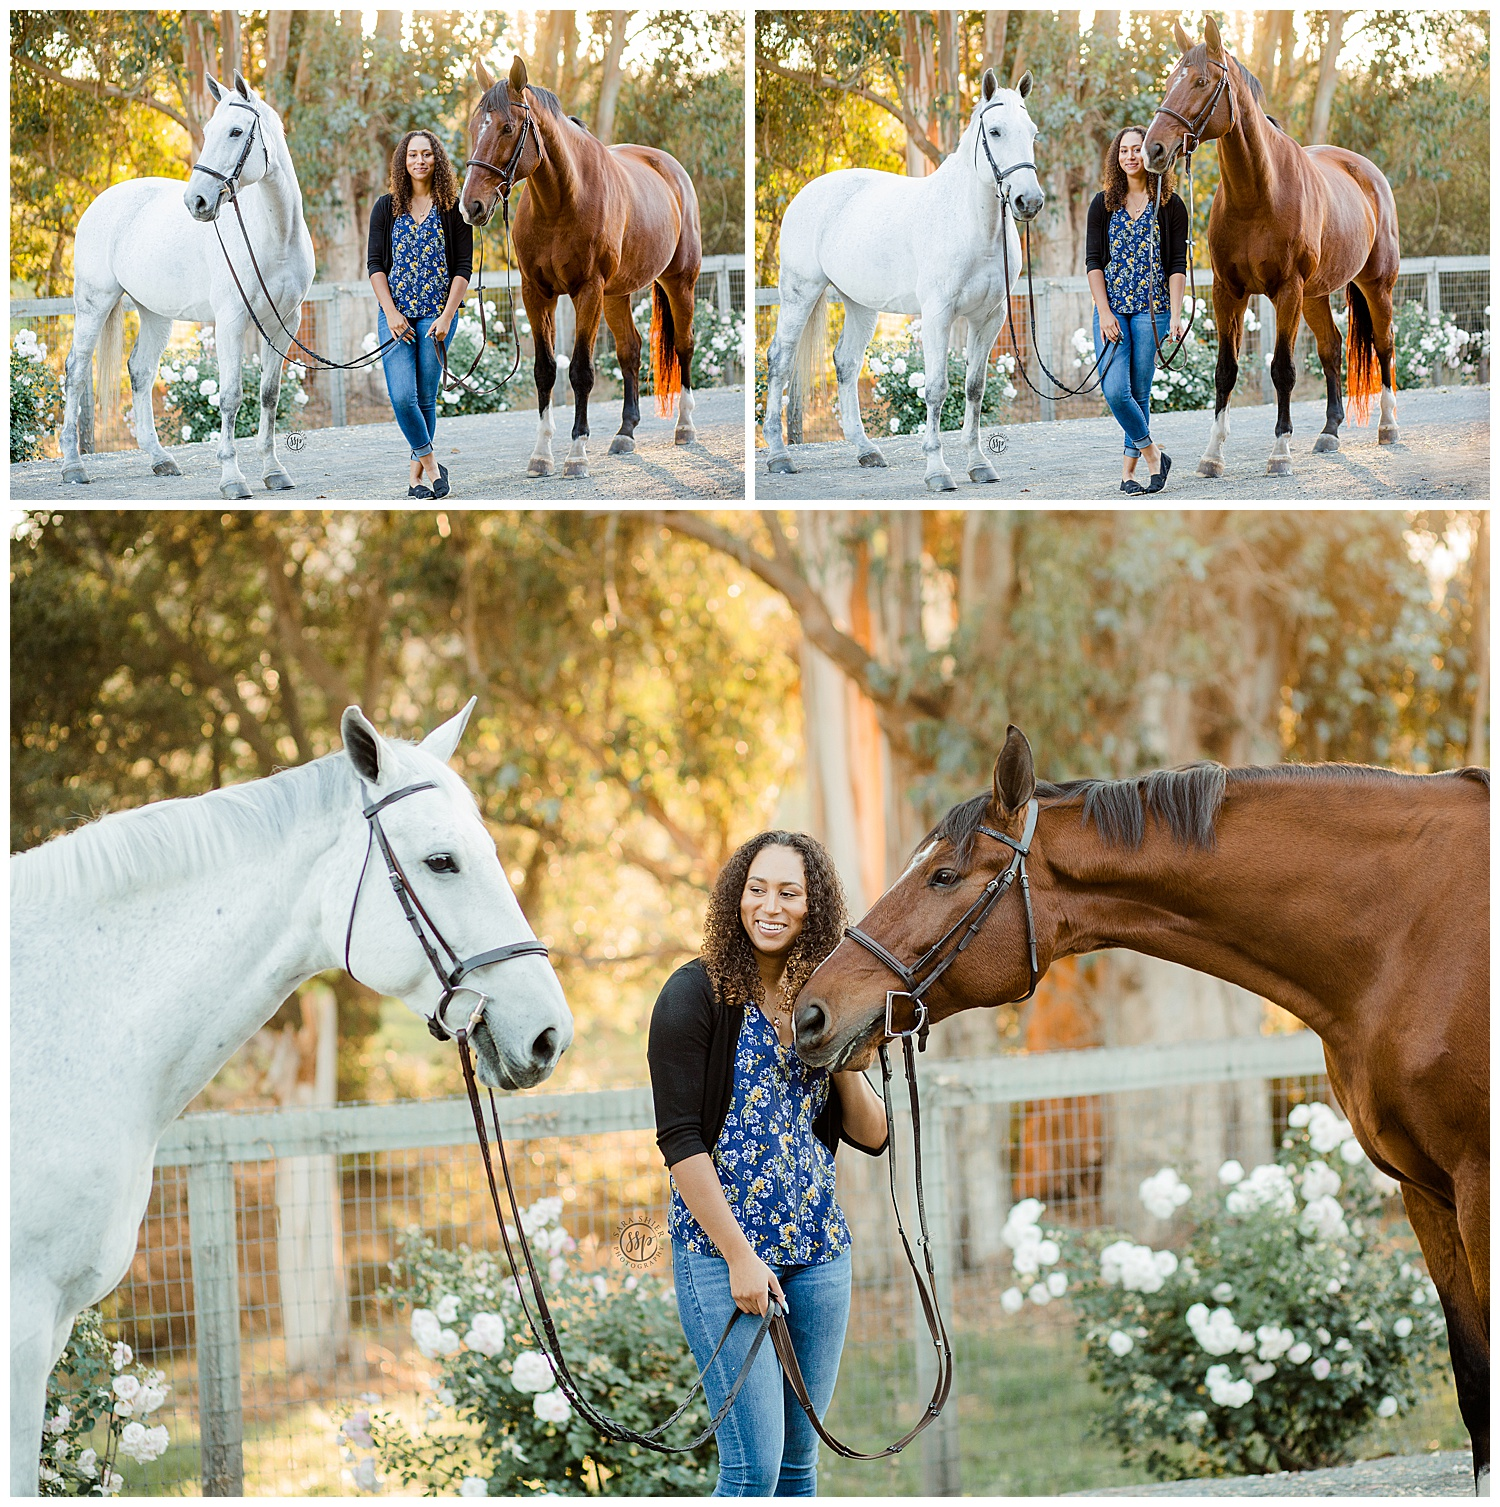 Black Background Horse Rider Equine Photographer Southern California Sara Shier Photography SoCal Equestrian Cowgirl_0243.jpg